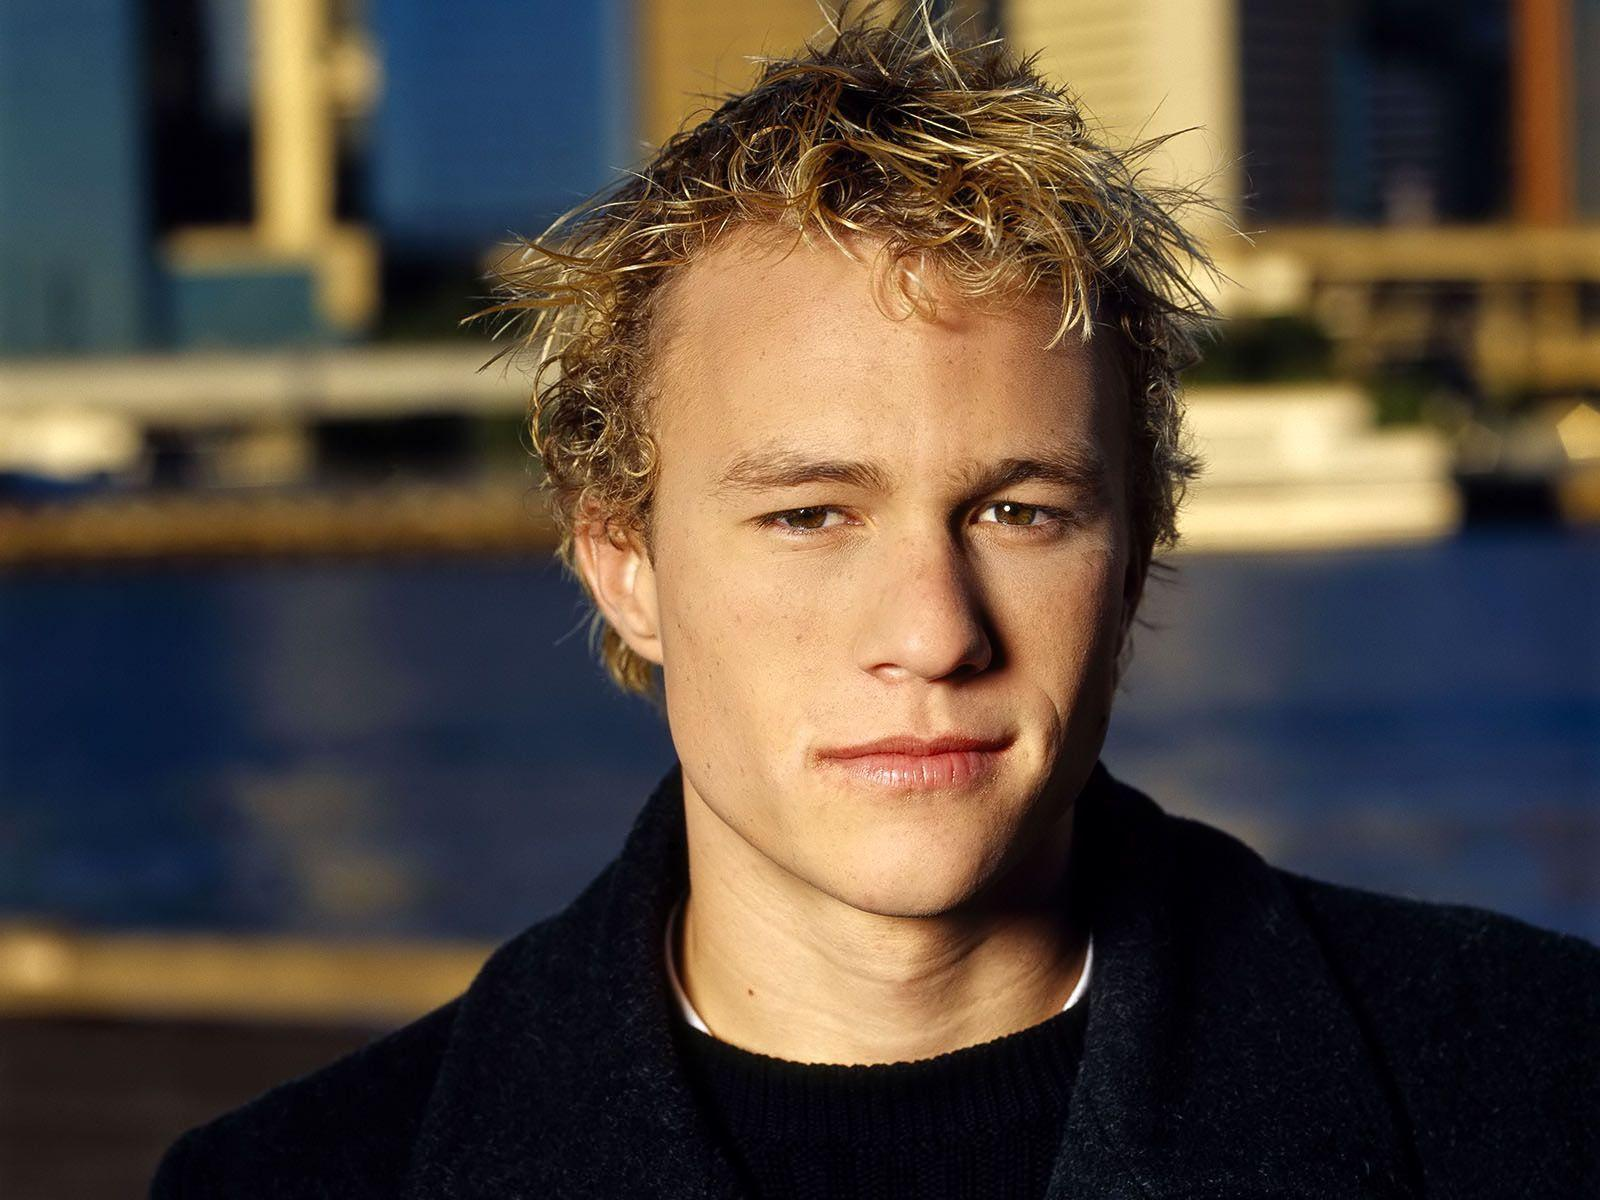 Heath Ledger #1151387 - People Images & Wallpapers on Jeweell